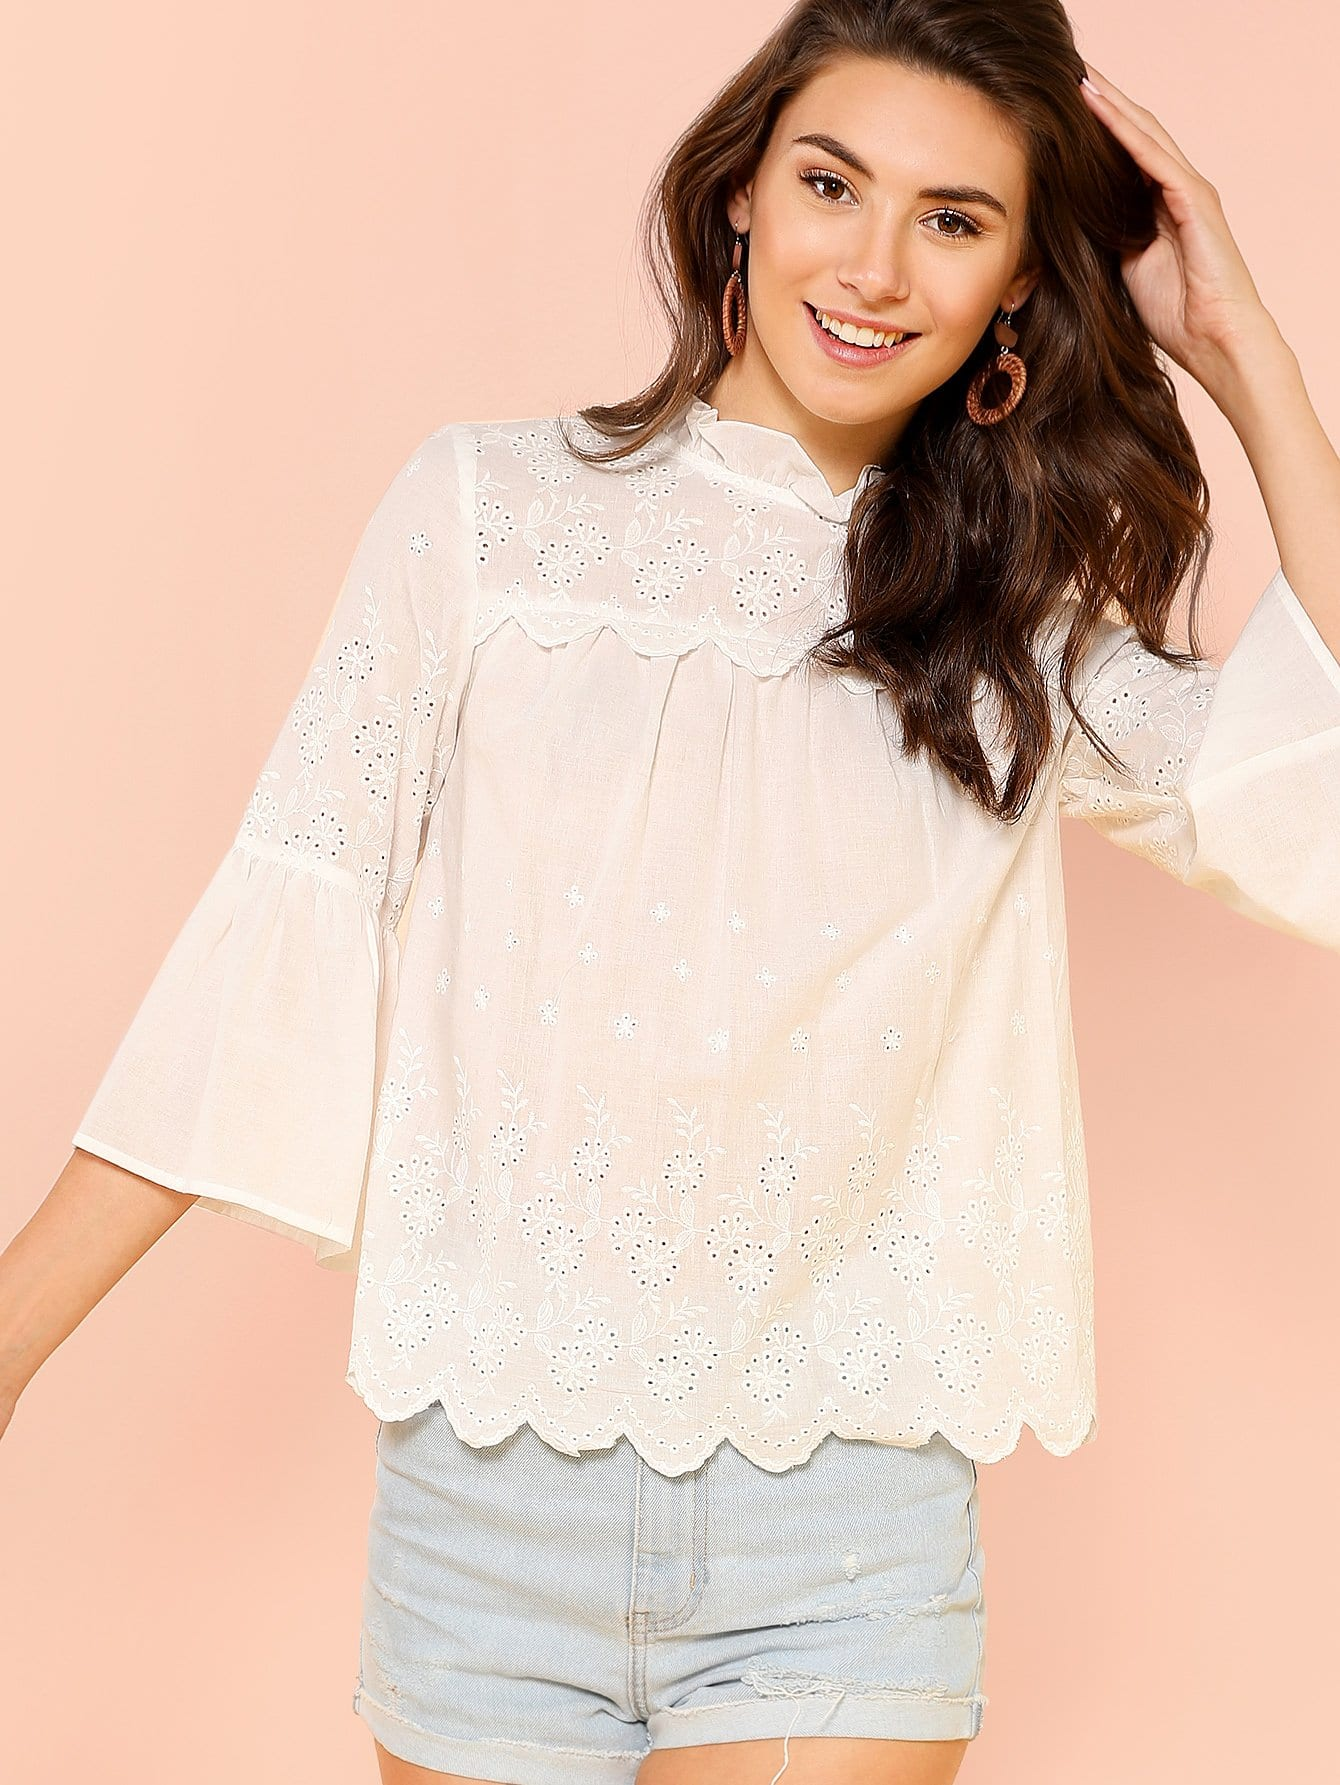 Embroidered Detail Keyhole Back Top layered fringe detail keyhole back top